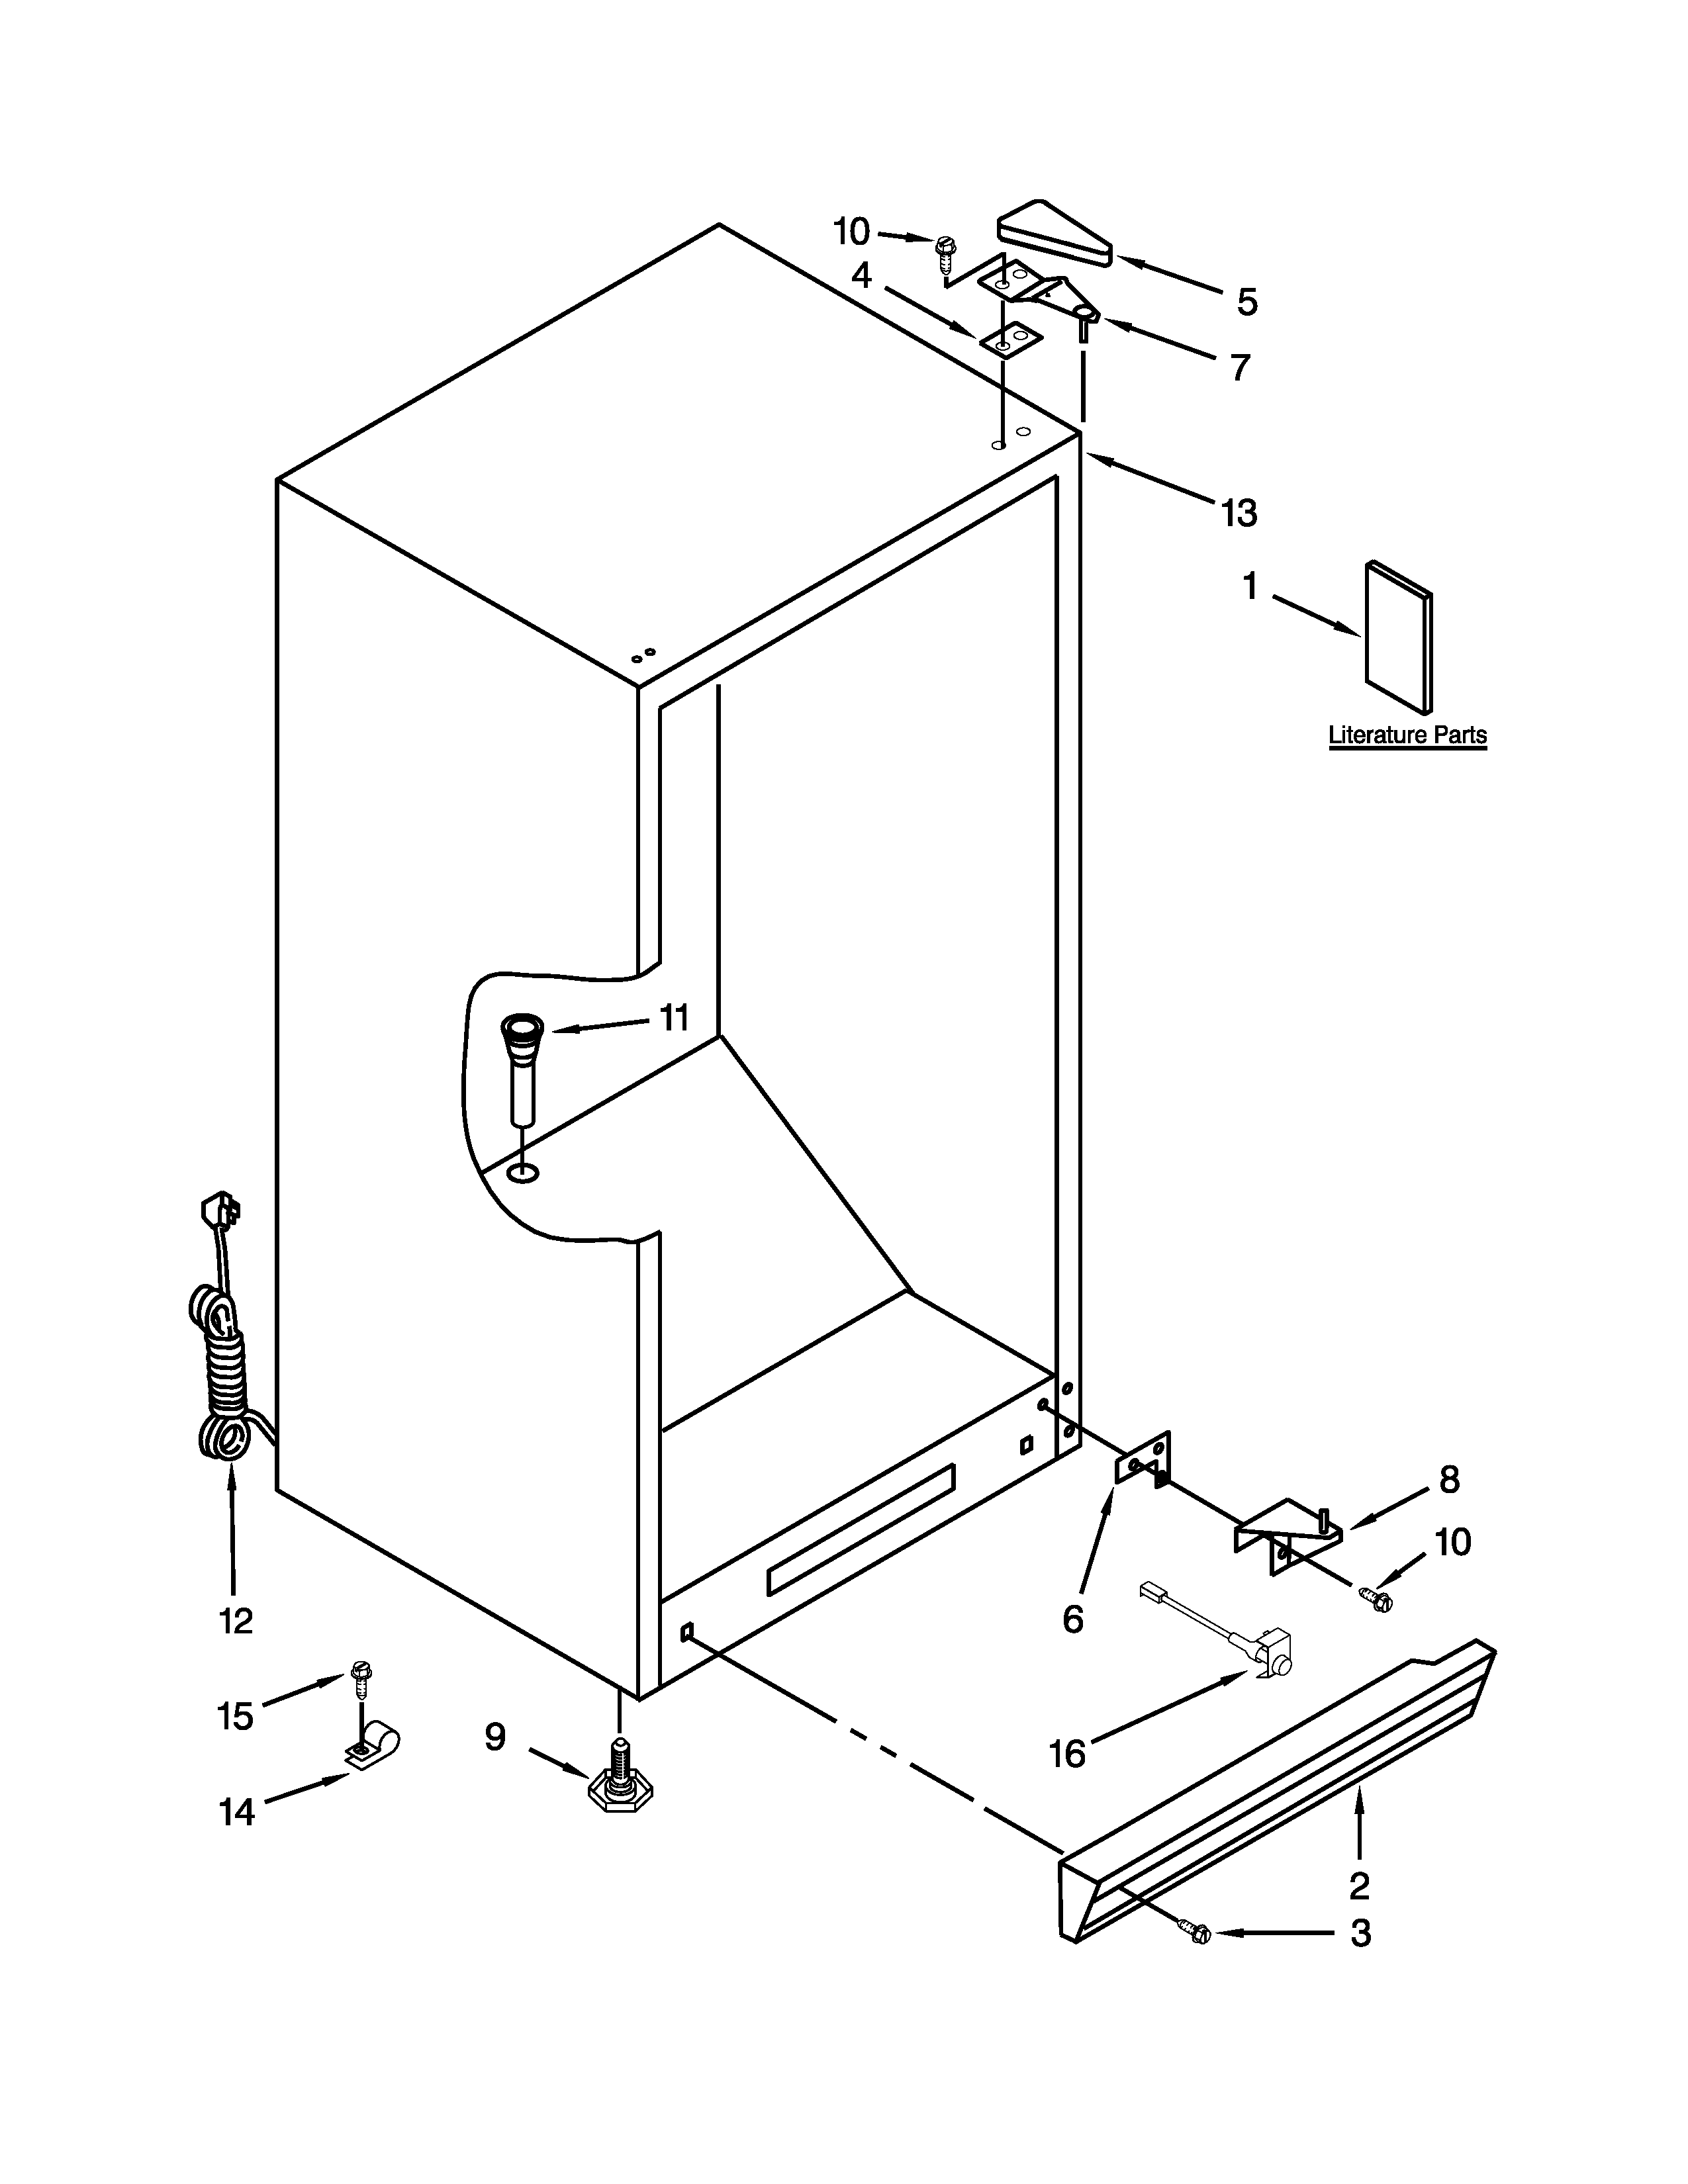 Computer Parts Drawing At Free For Personal Use Diagram Kids Your Hardware 2550x3300 Whirlpool Vertical Freezer Model Ev250nxtq01 Sears